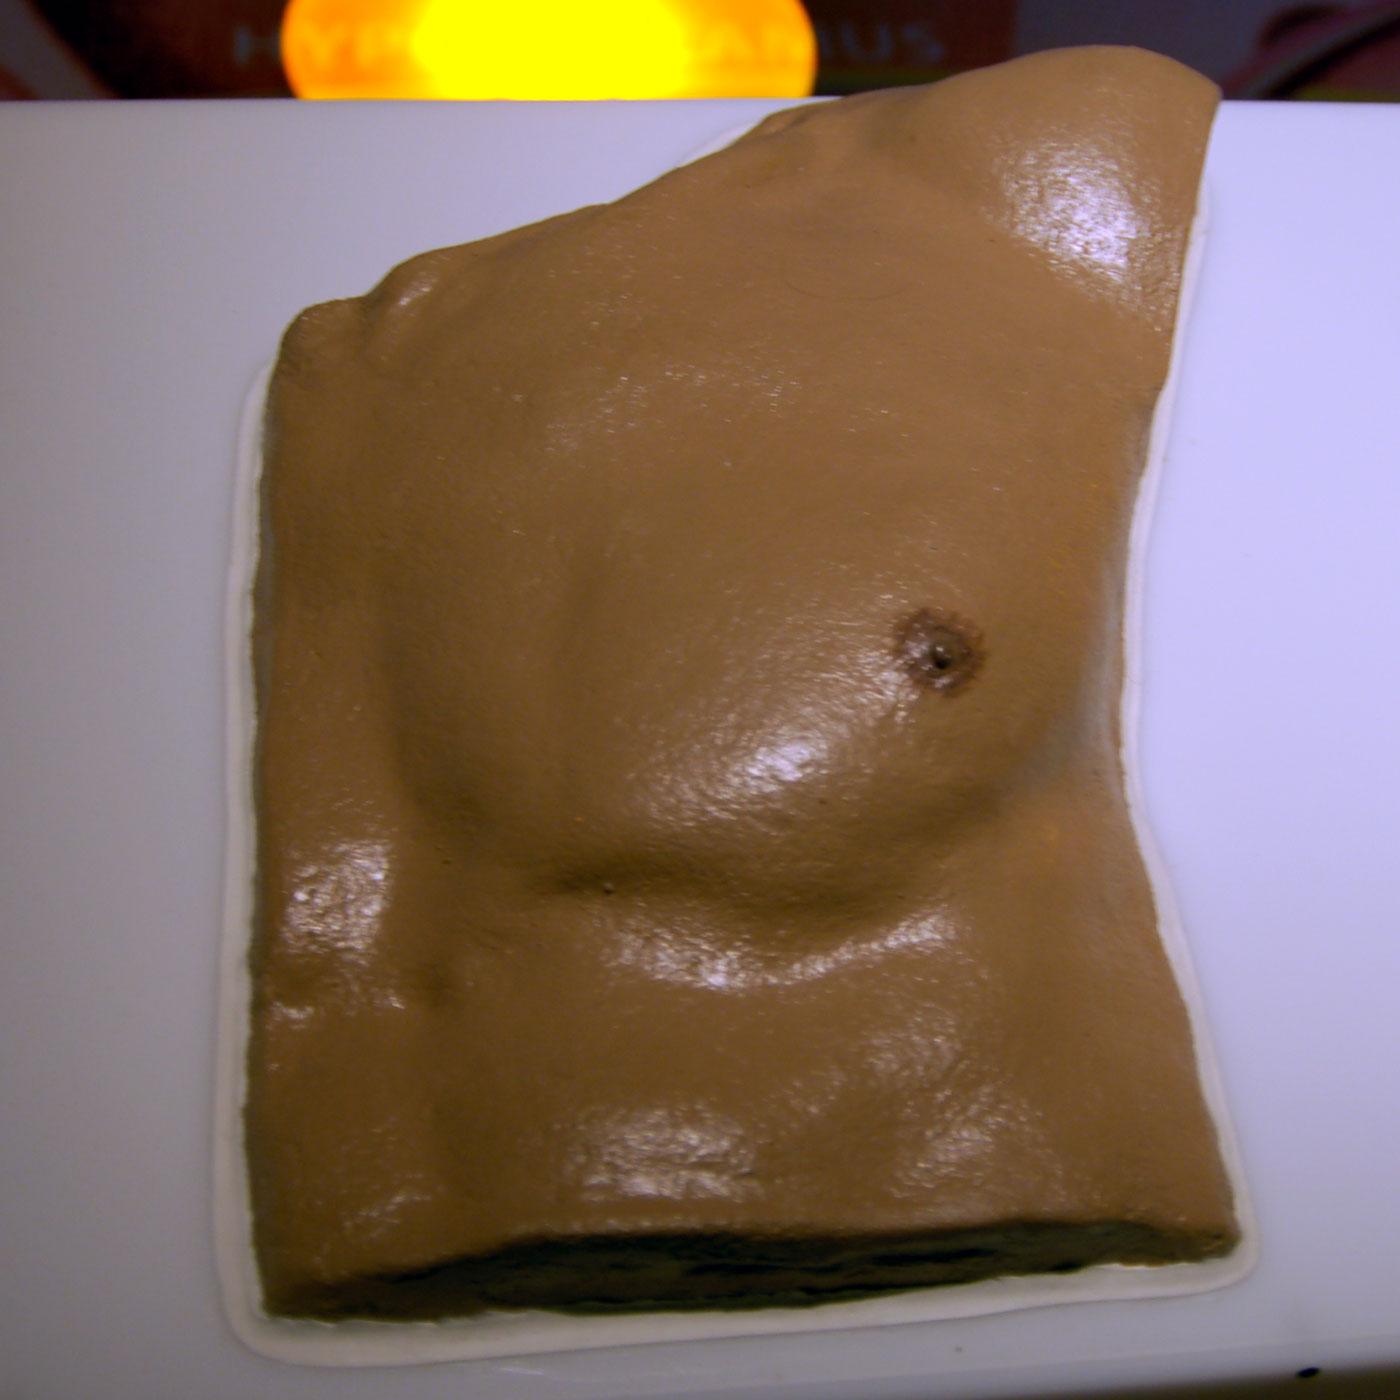 MALE BREAST, © 2008, polyurethane, acrylic paint, 1 : 1